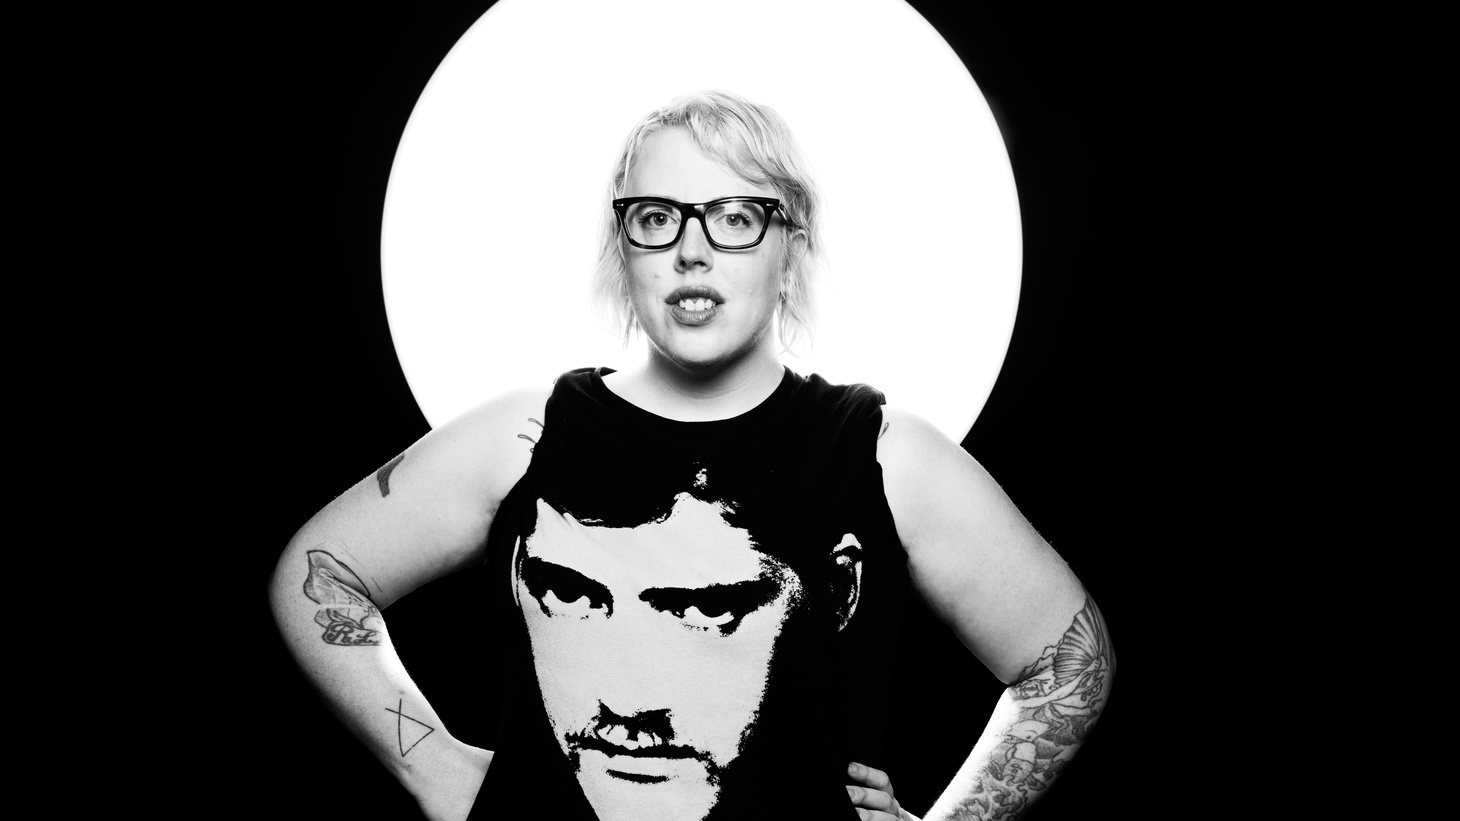 The Black Madonna (aka Marea Stamper) is a dance music veteran who fled the Midwest for Chicago, building her career from scratch in the city where house music was born.